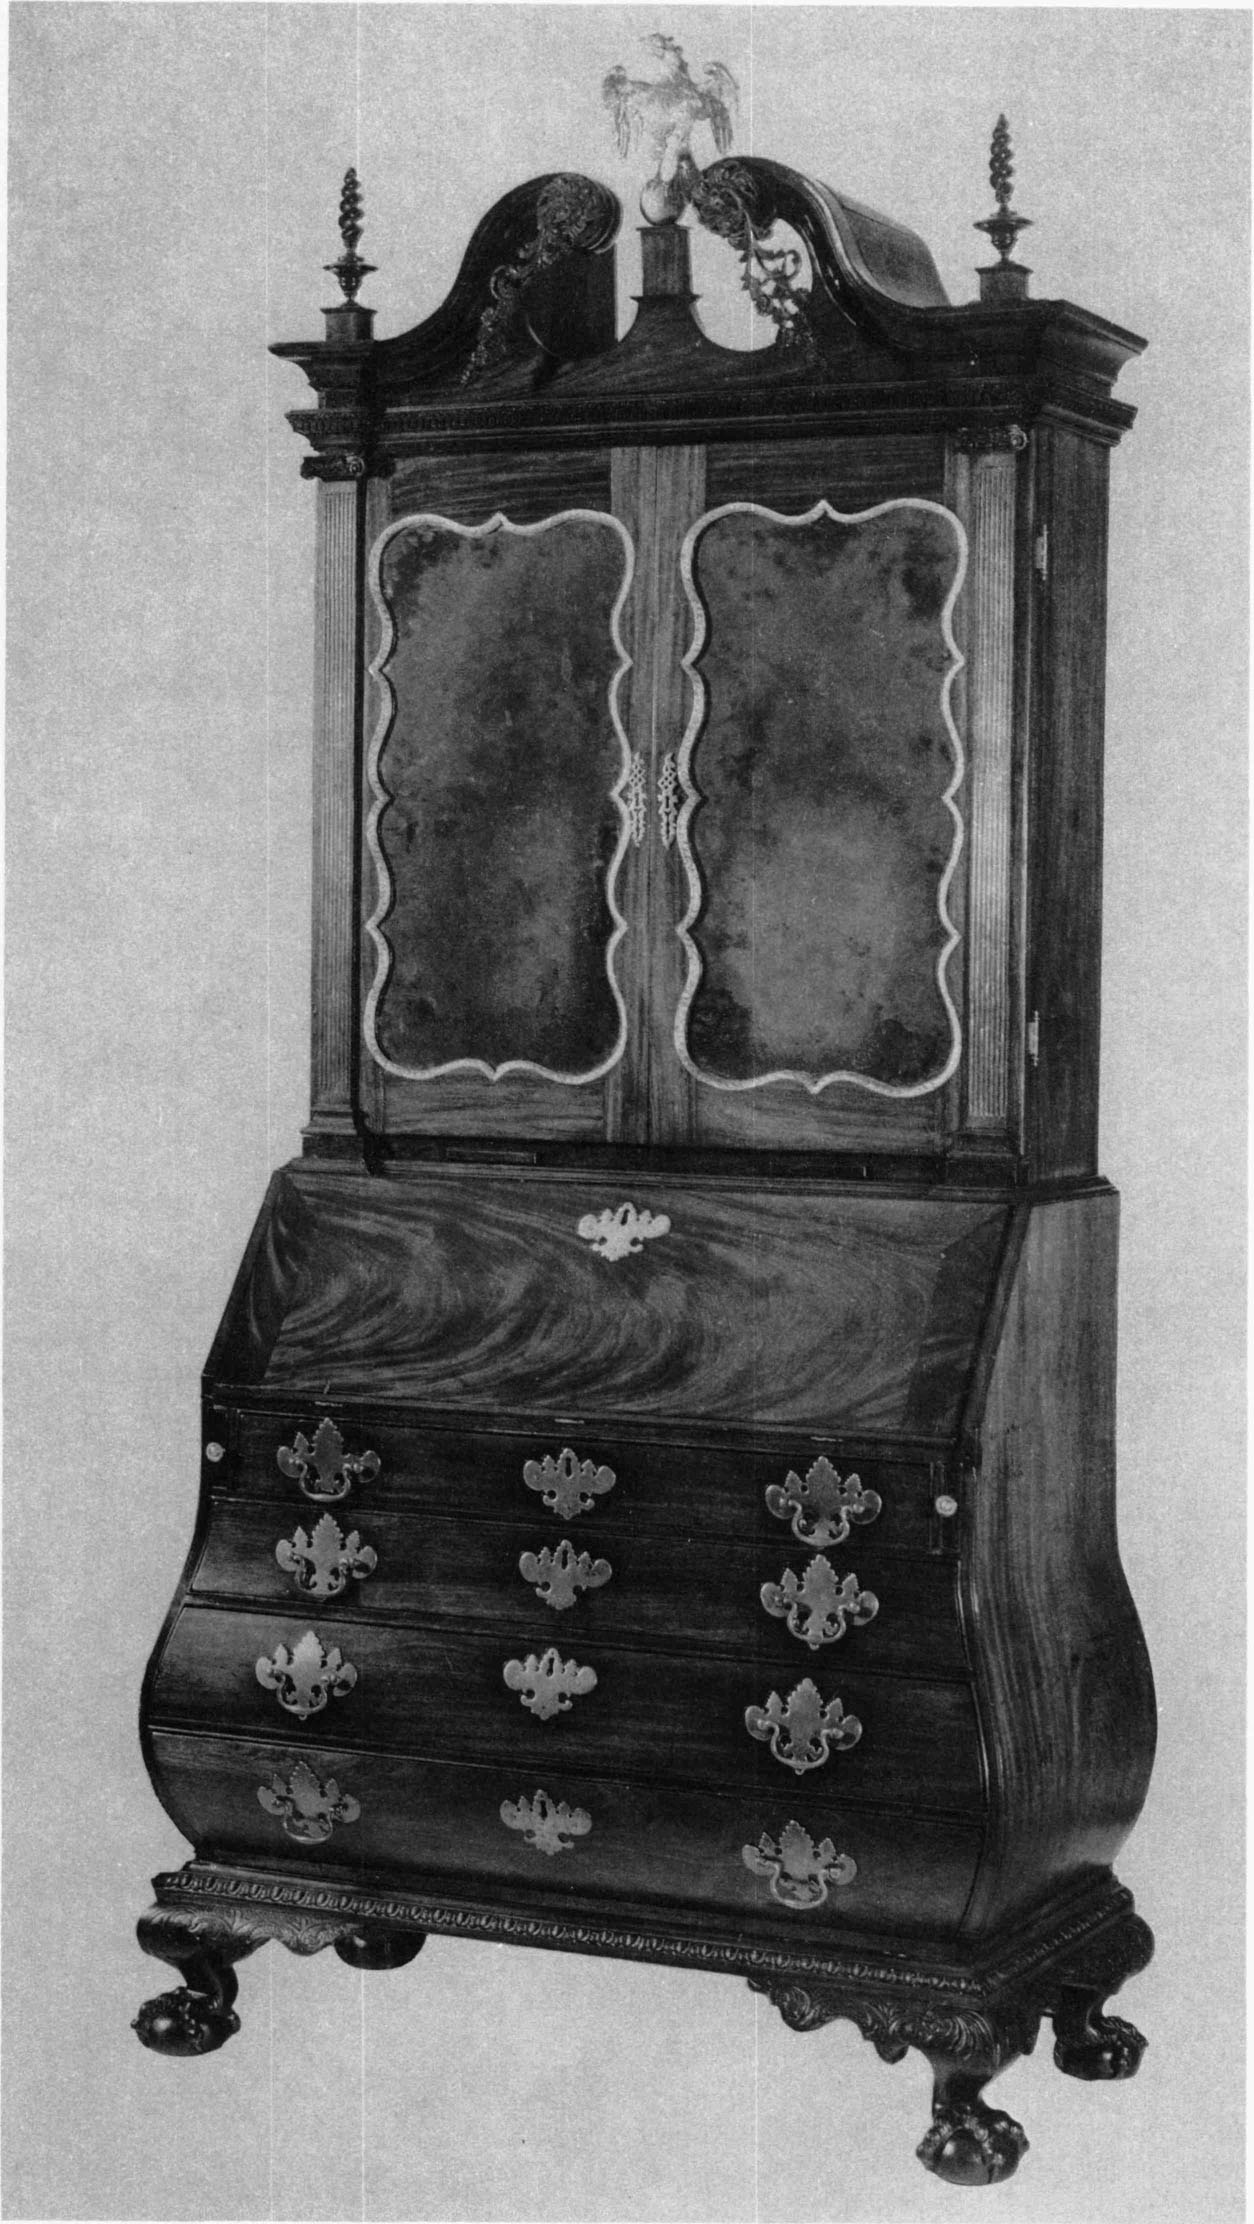 the bombé furniture of boston colonial society of massachusetts